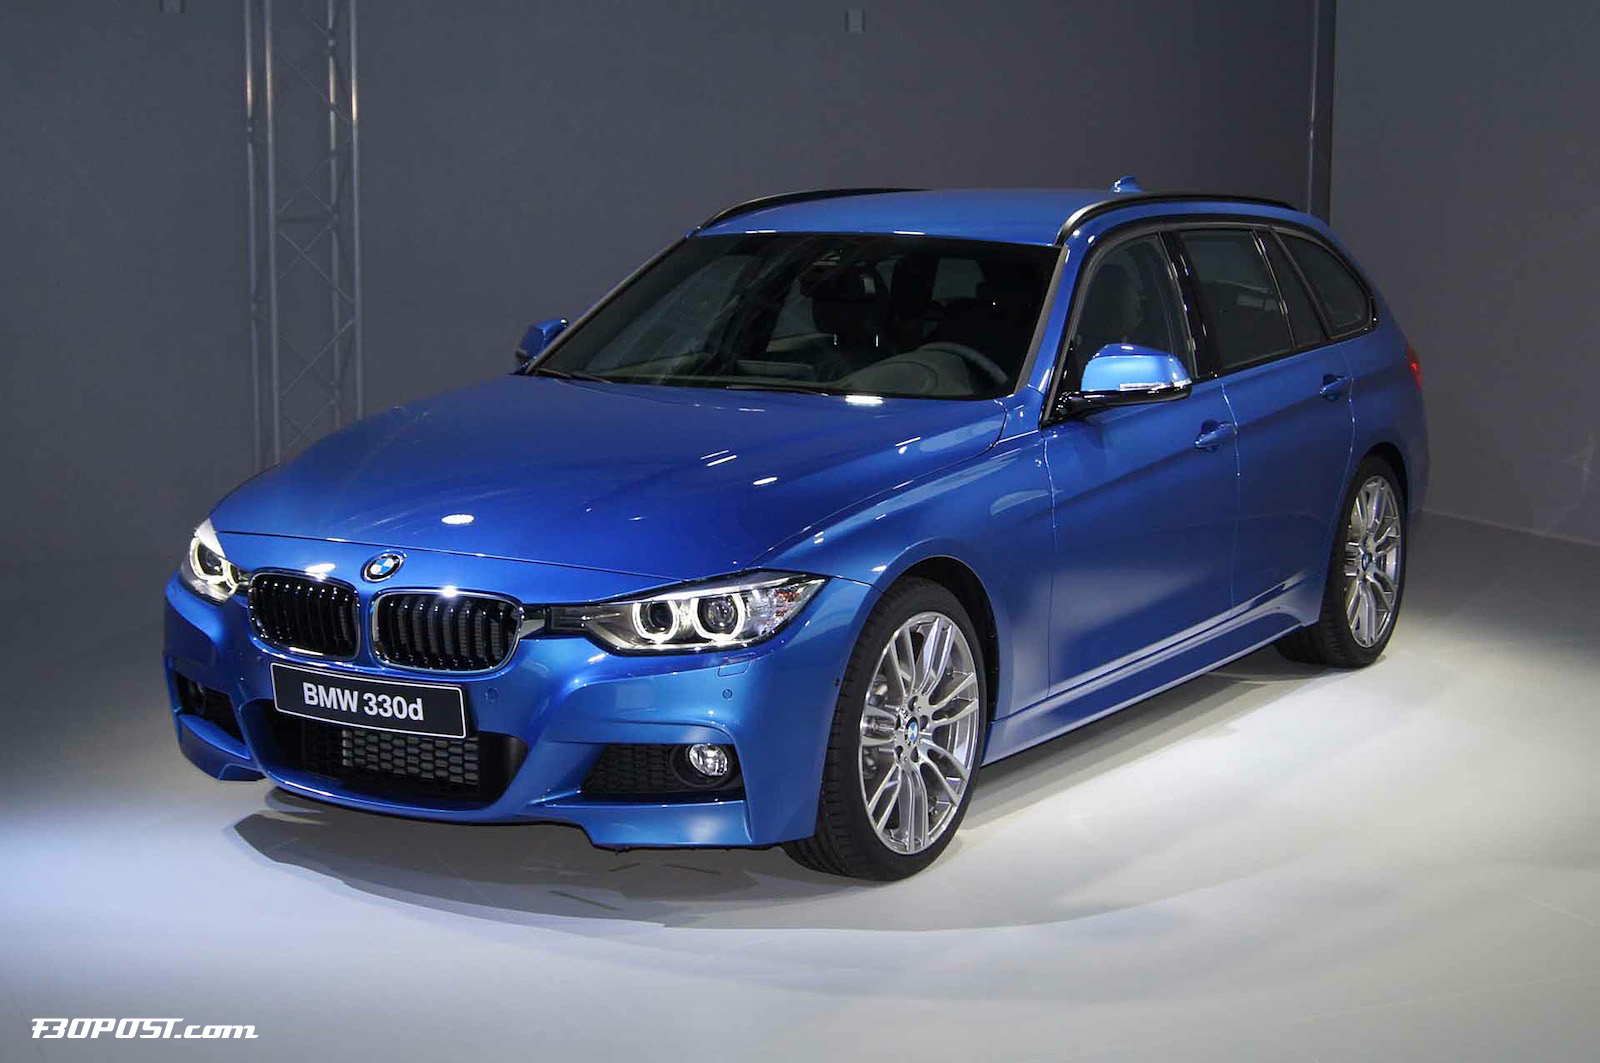 m sport f31 3 series touring officially shown for first time. Black Bedroom Furniture Sets. Home Design Ideas